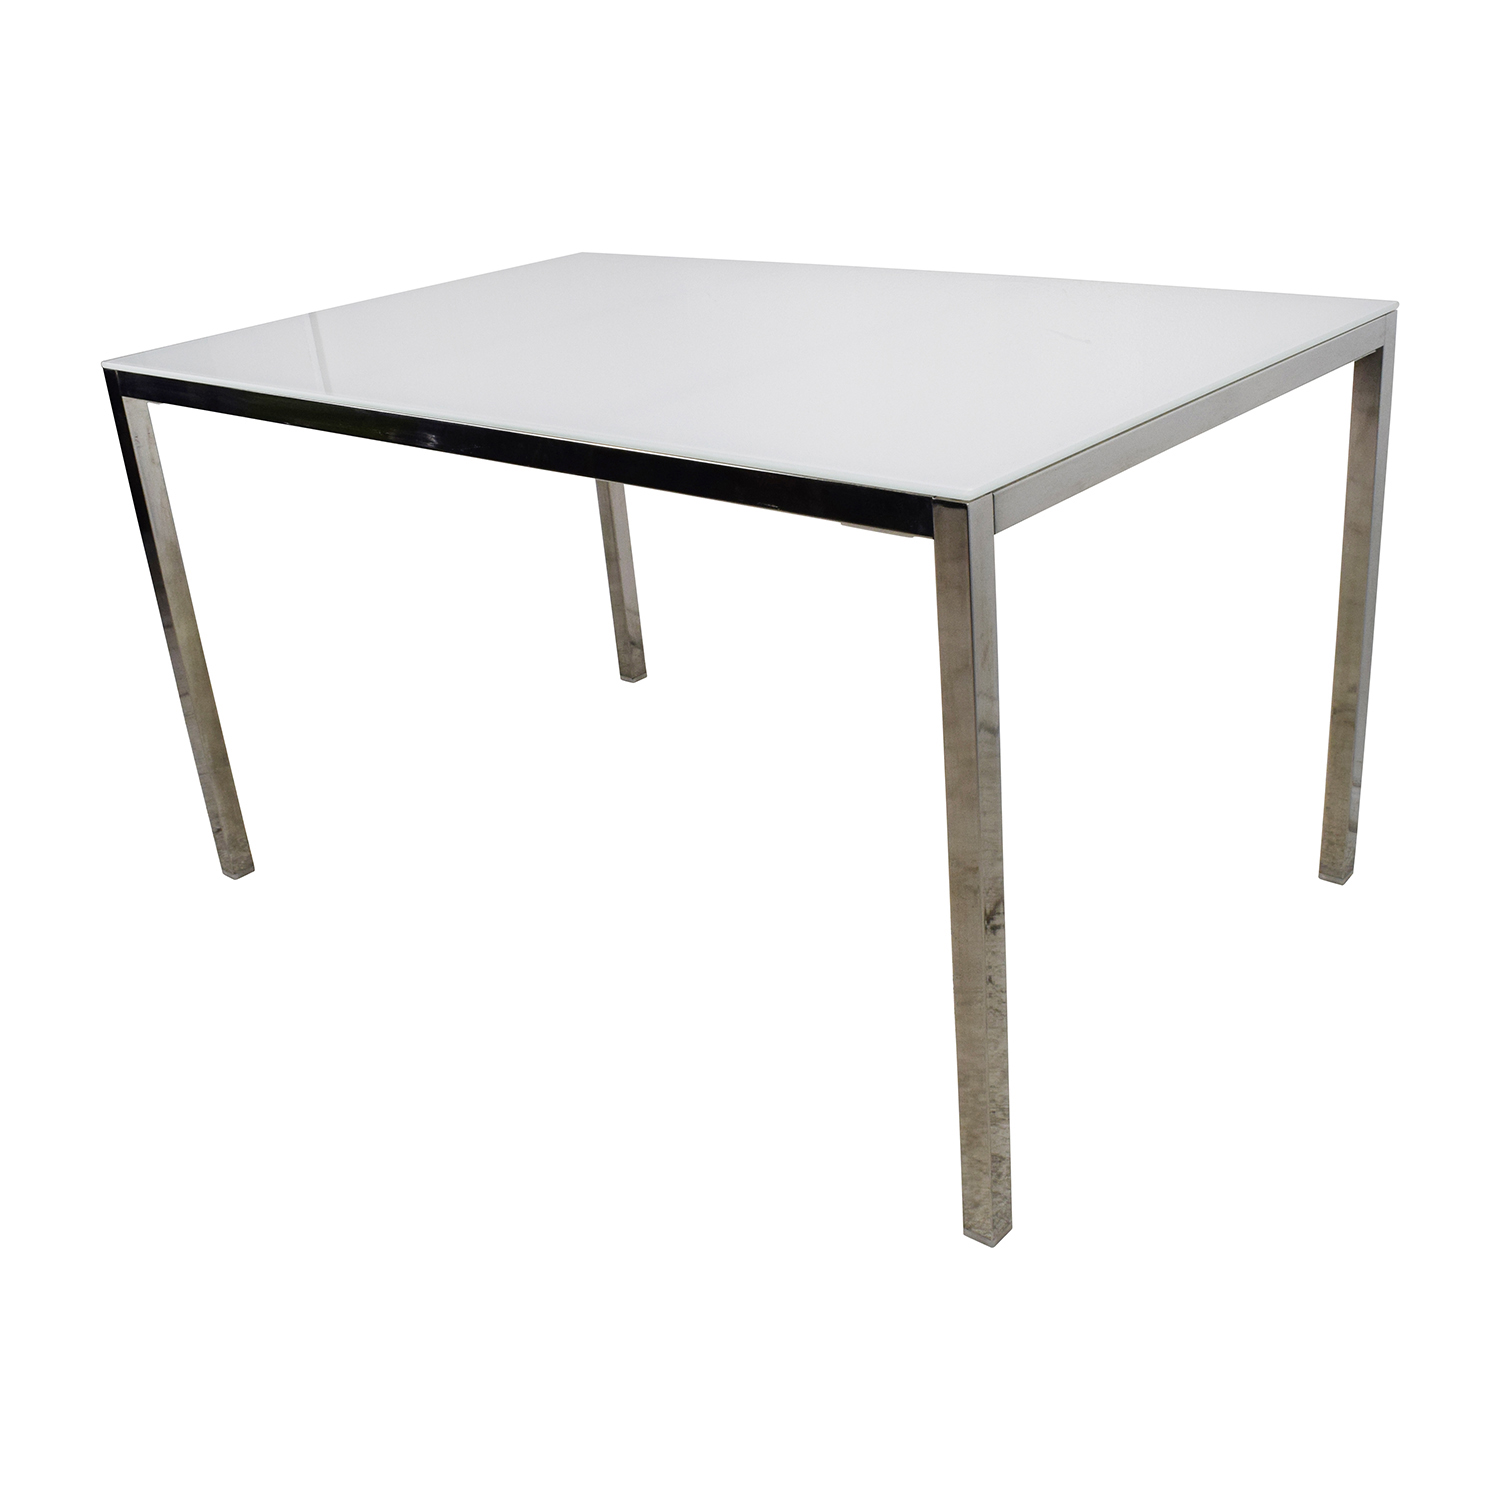 ... IKEA Torsby Large Glass Top Dining Table / Tables ...